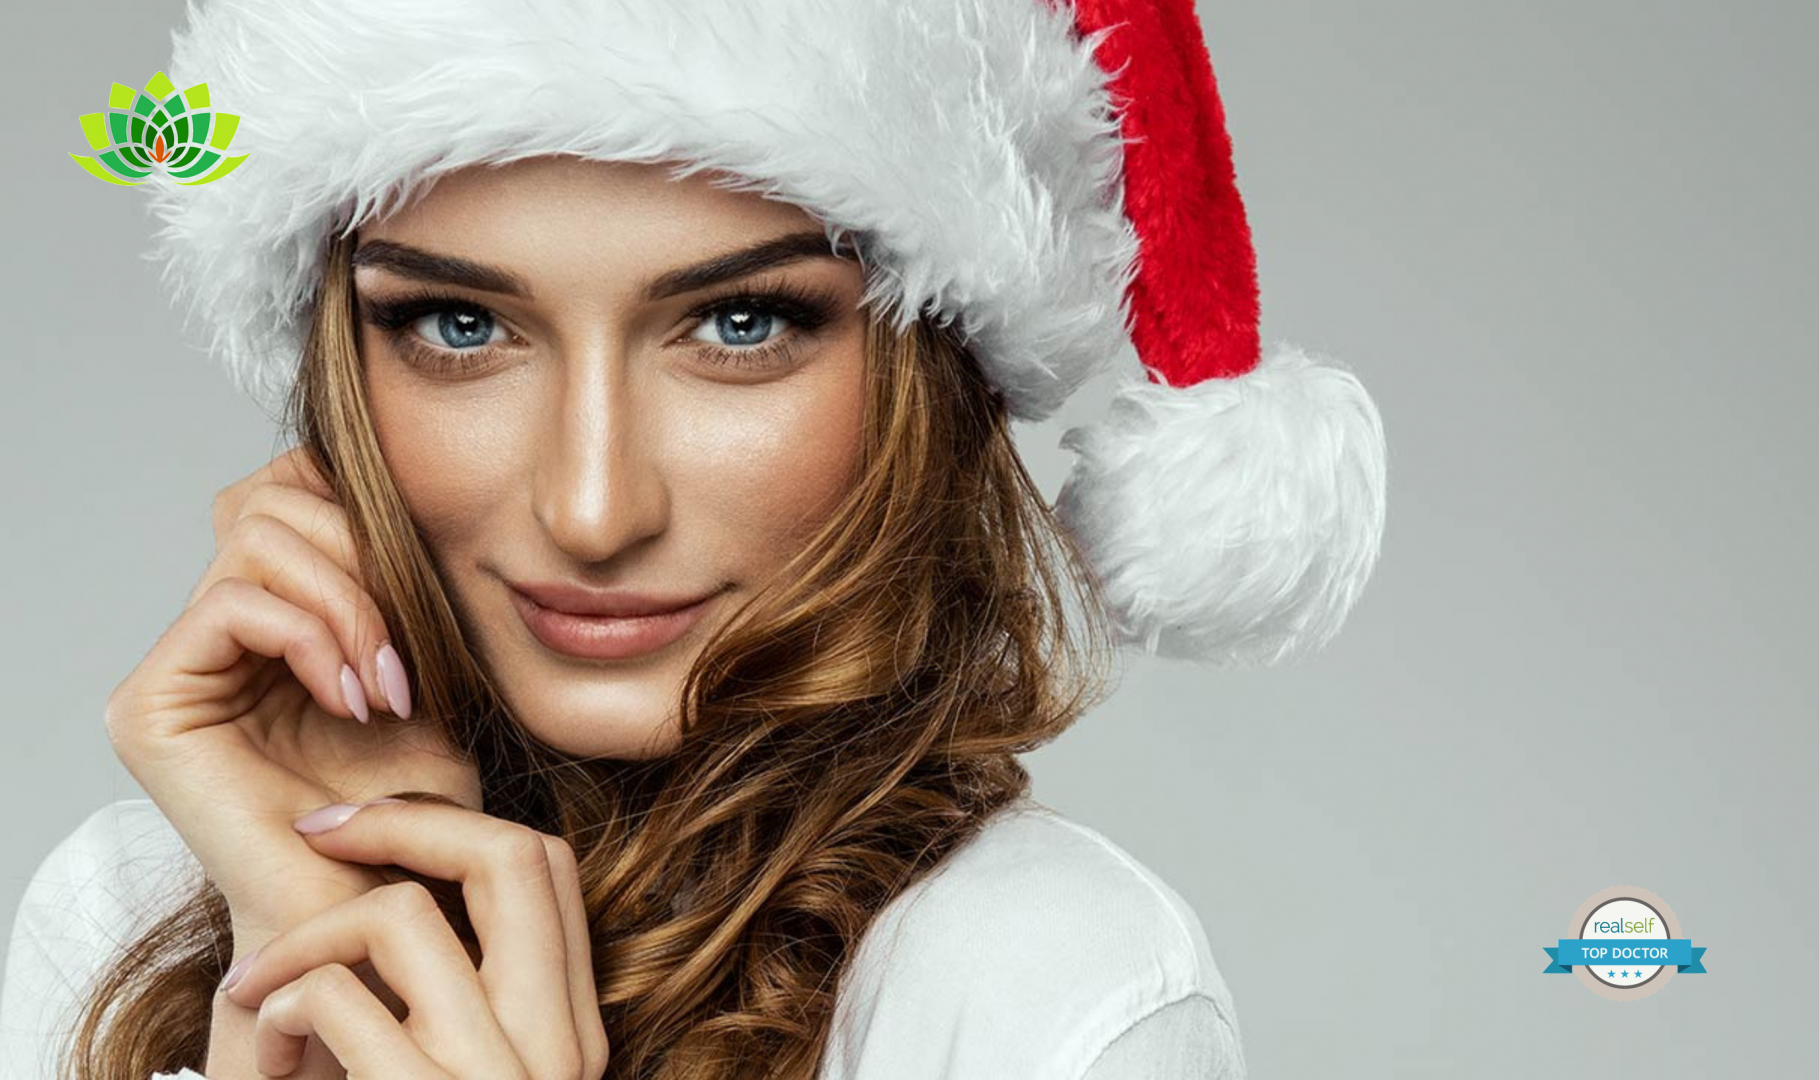 Treat yourself to a Facelift this Xmas!